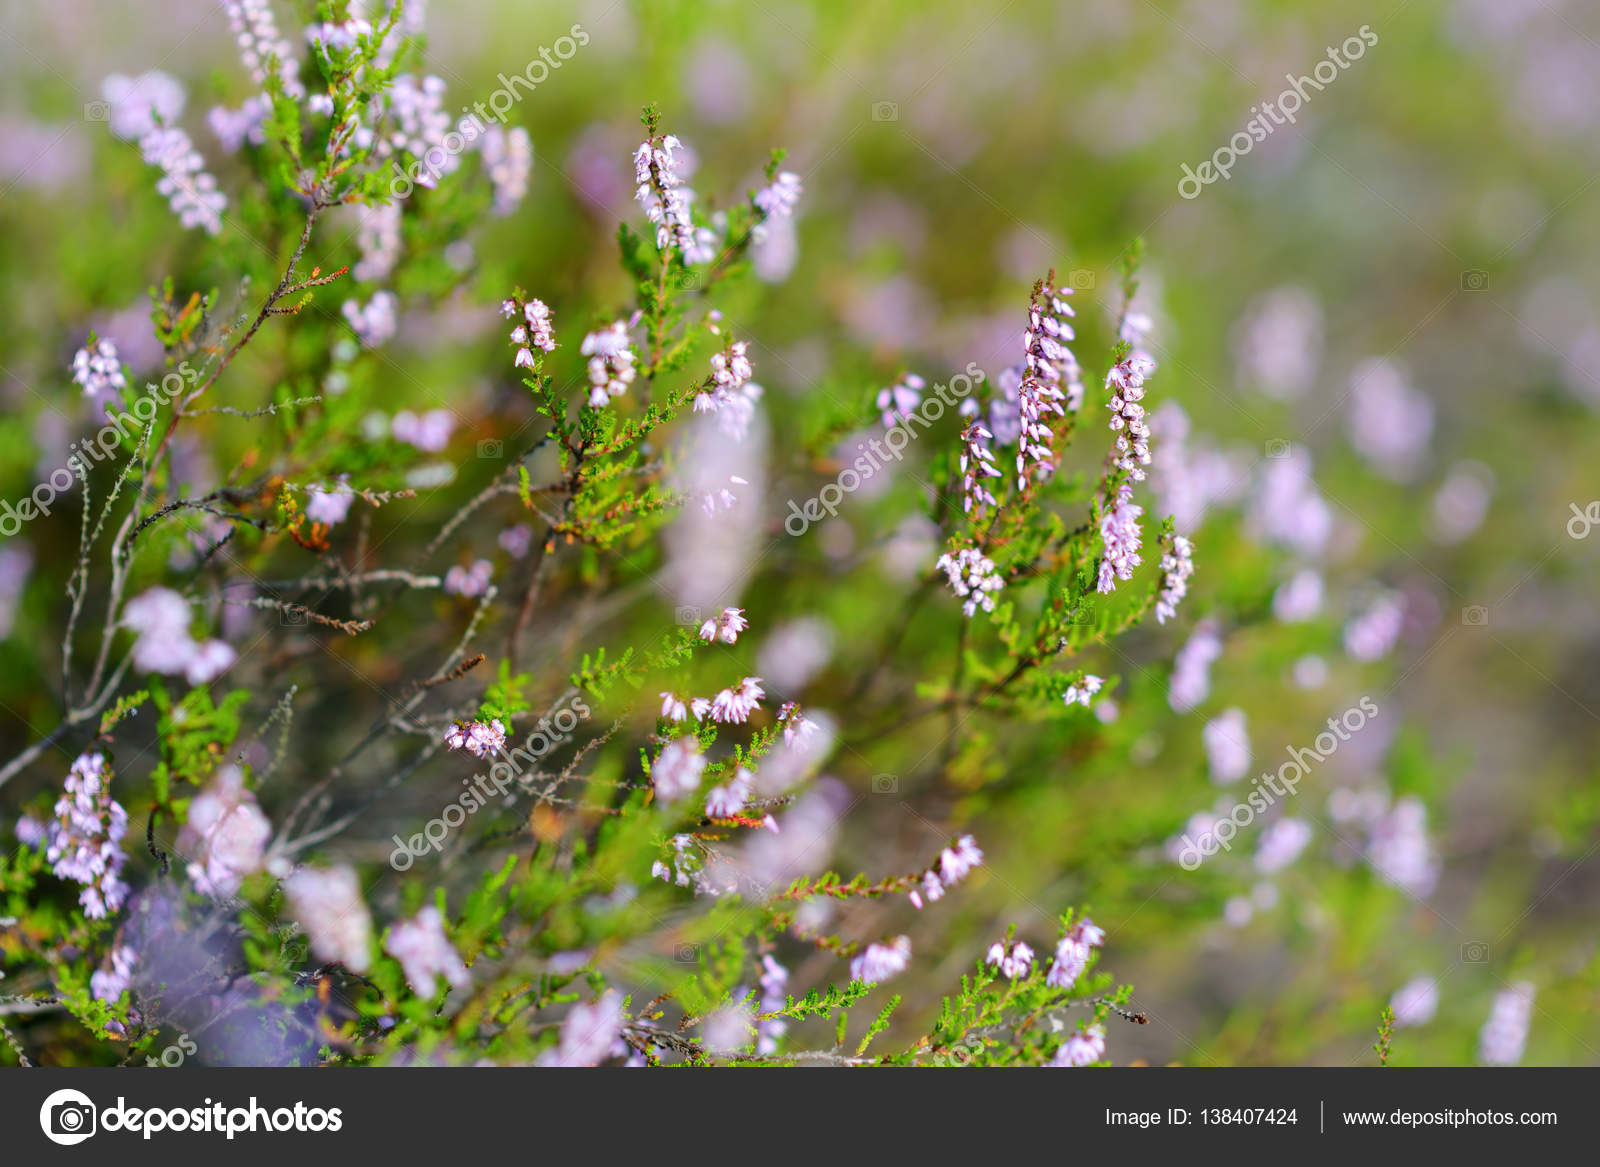 Detail Of A Flowering Heather Plant Stock Photo Maximkabb 138407424